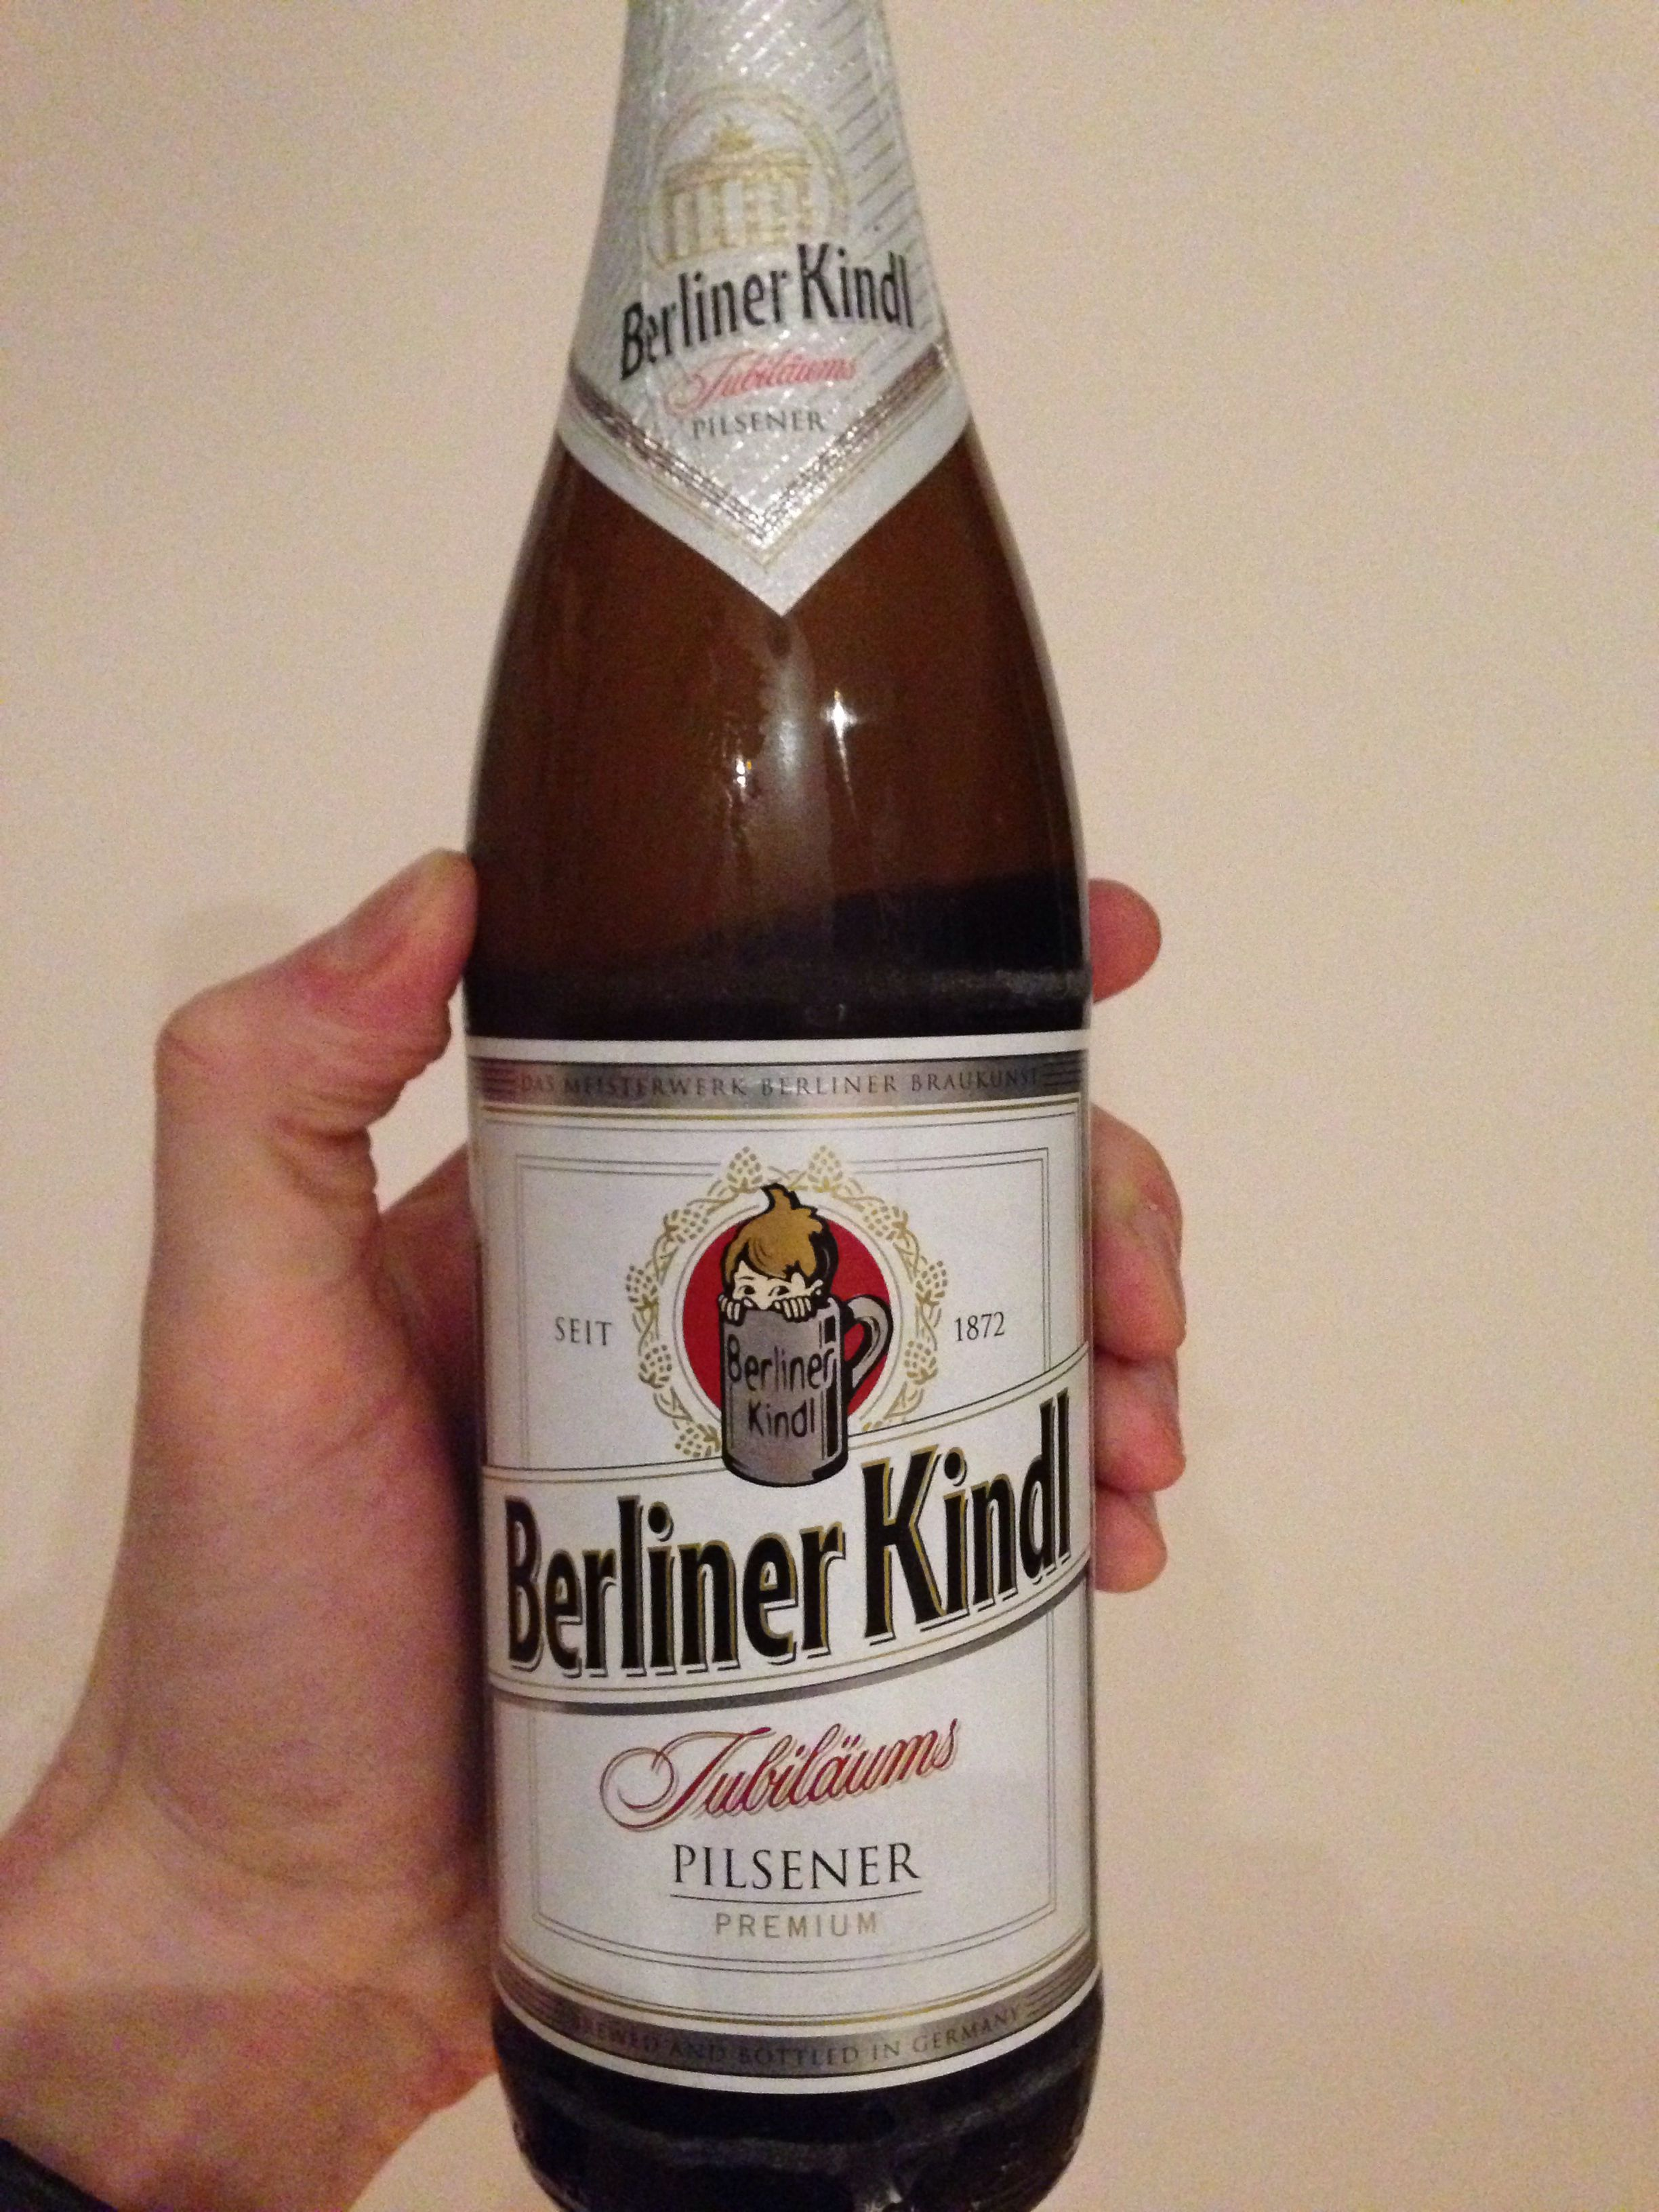 Berliner Kindl, Germany